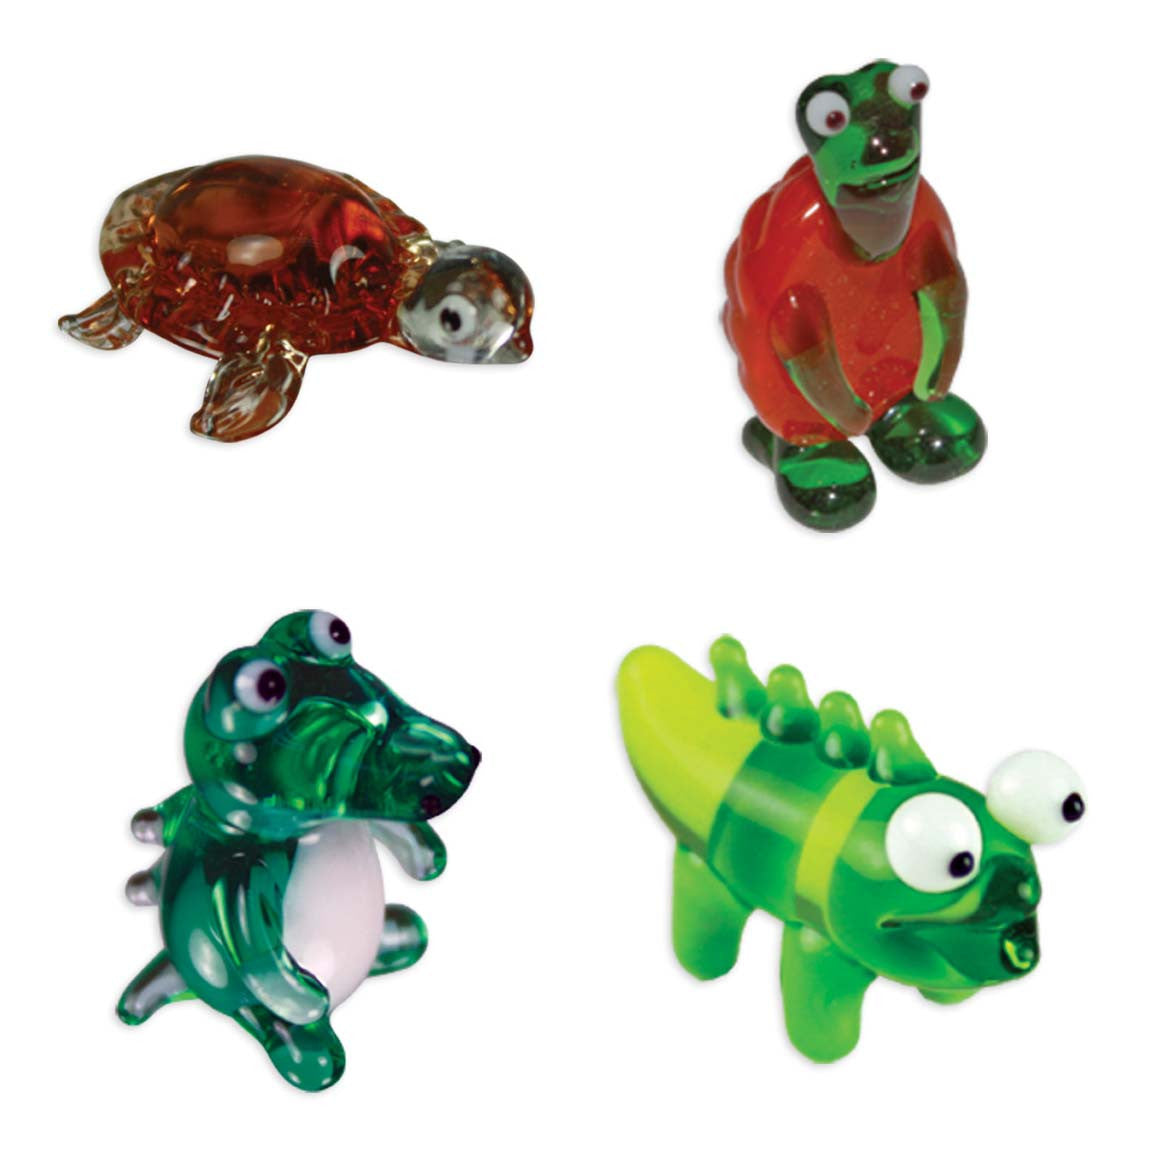 Looking Glass Torch - Reptiles - Tortoise, Turtle & 2 Different Gators (4-Pack) - Off The Wall Toys and Gifts